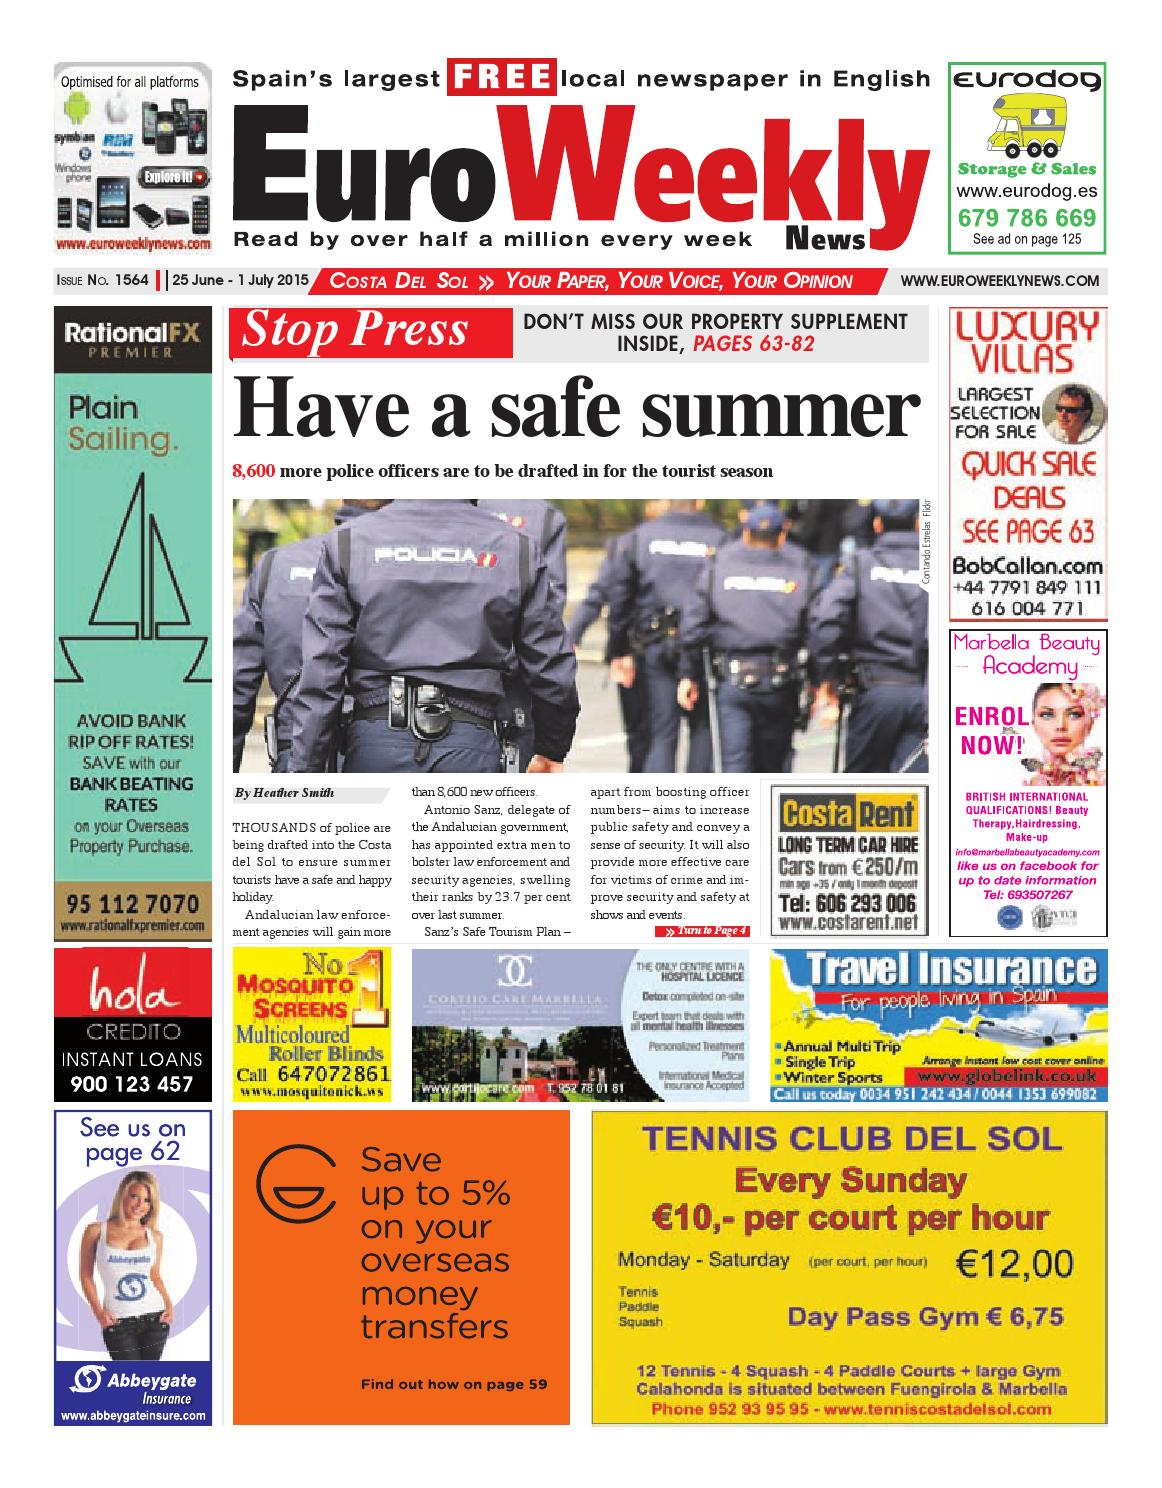 Euro Weekly News Costa Del Sol 25 June 1 July 2015 Issue 1564 By Having To Rewire An Entire Circuit Faulty Breaker Caused Flickr Media Sa Issuu